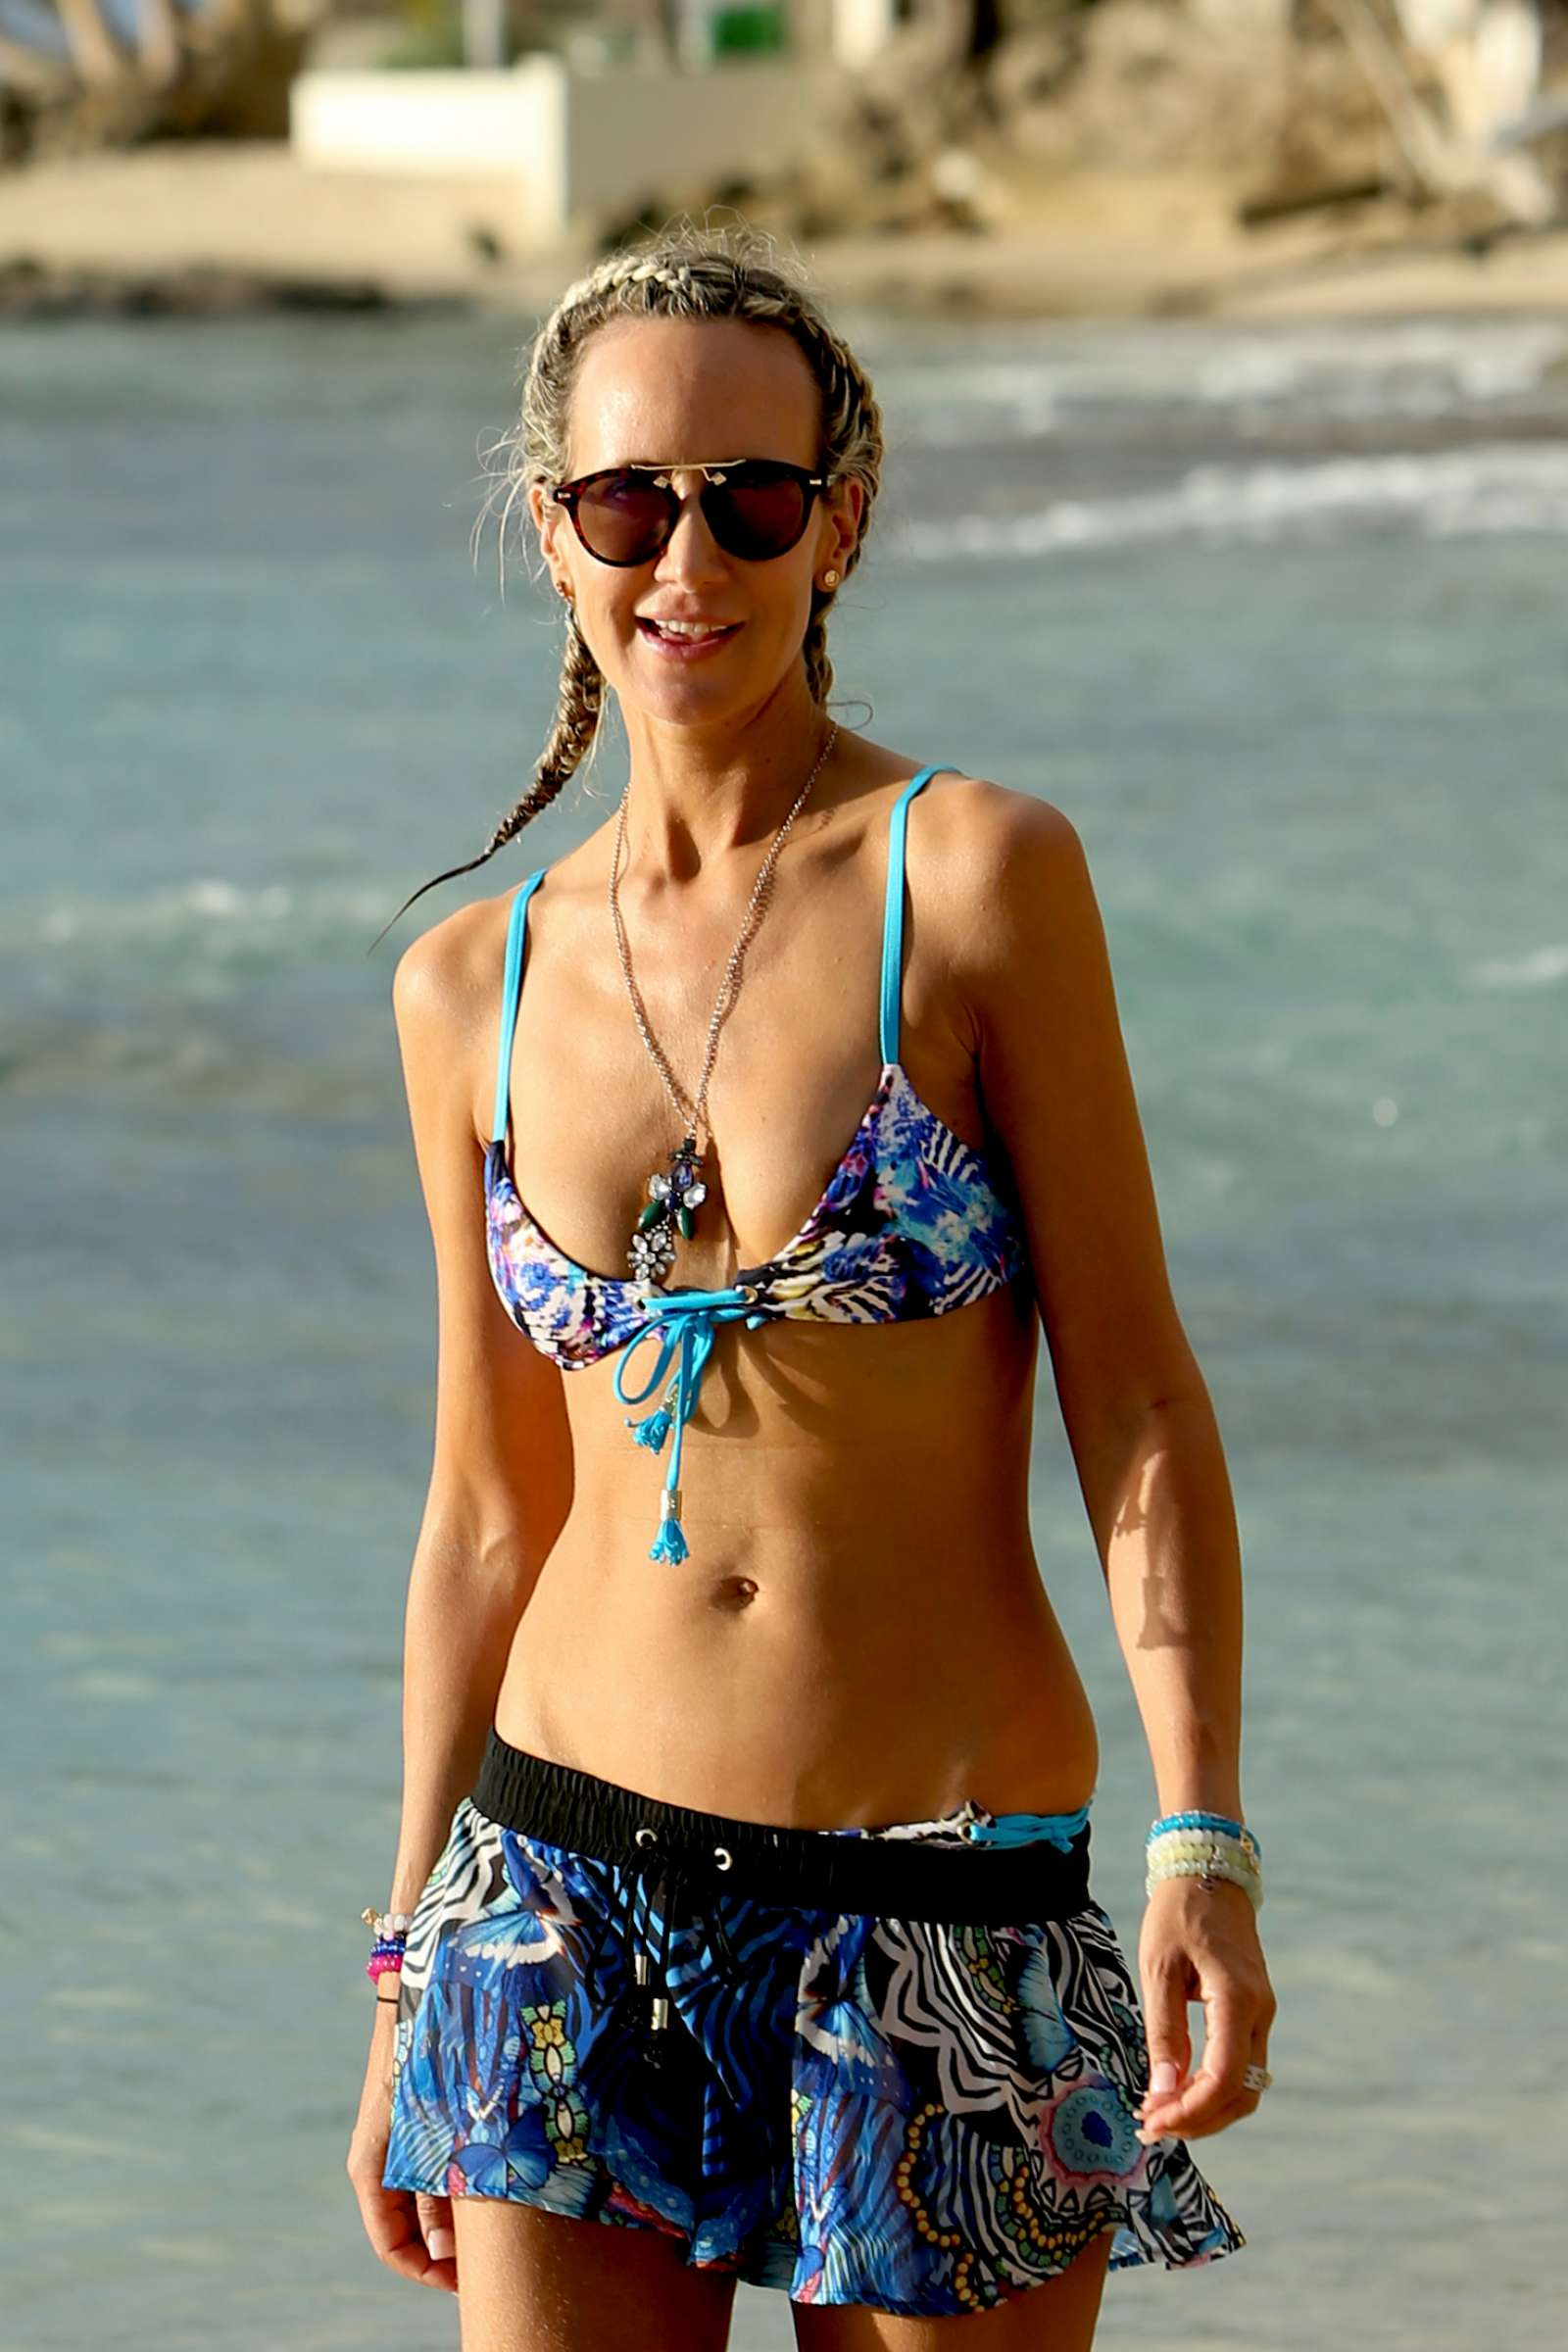 Lady Victoria Hervey 2017 : Lady Victoria Hervey in Bikini 2017 -35